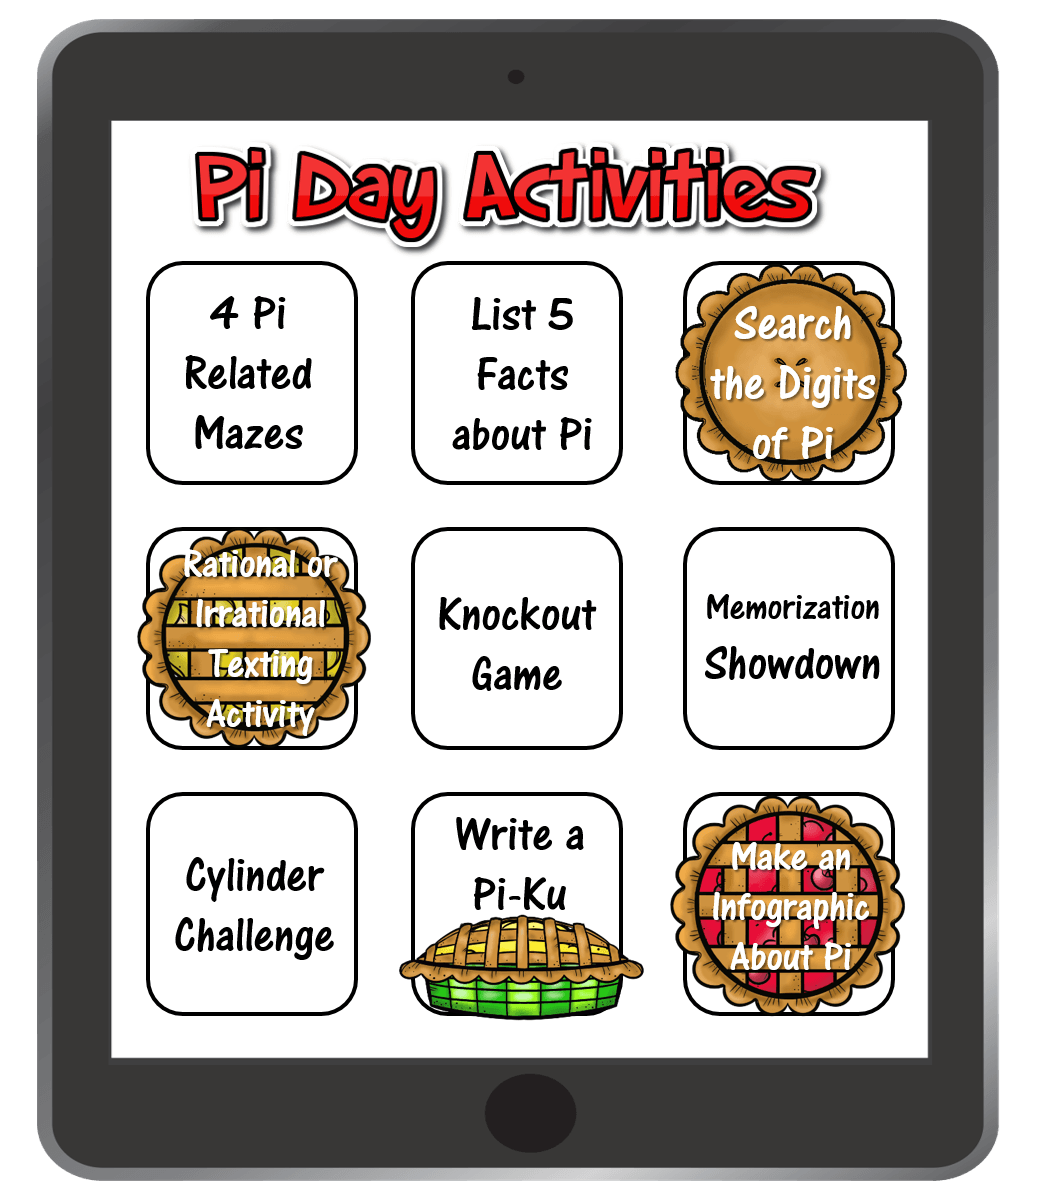 9 Easy Activities To Celebrate Pi Day